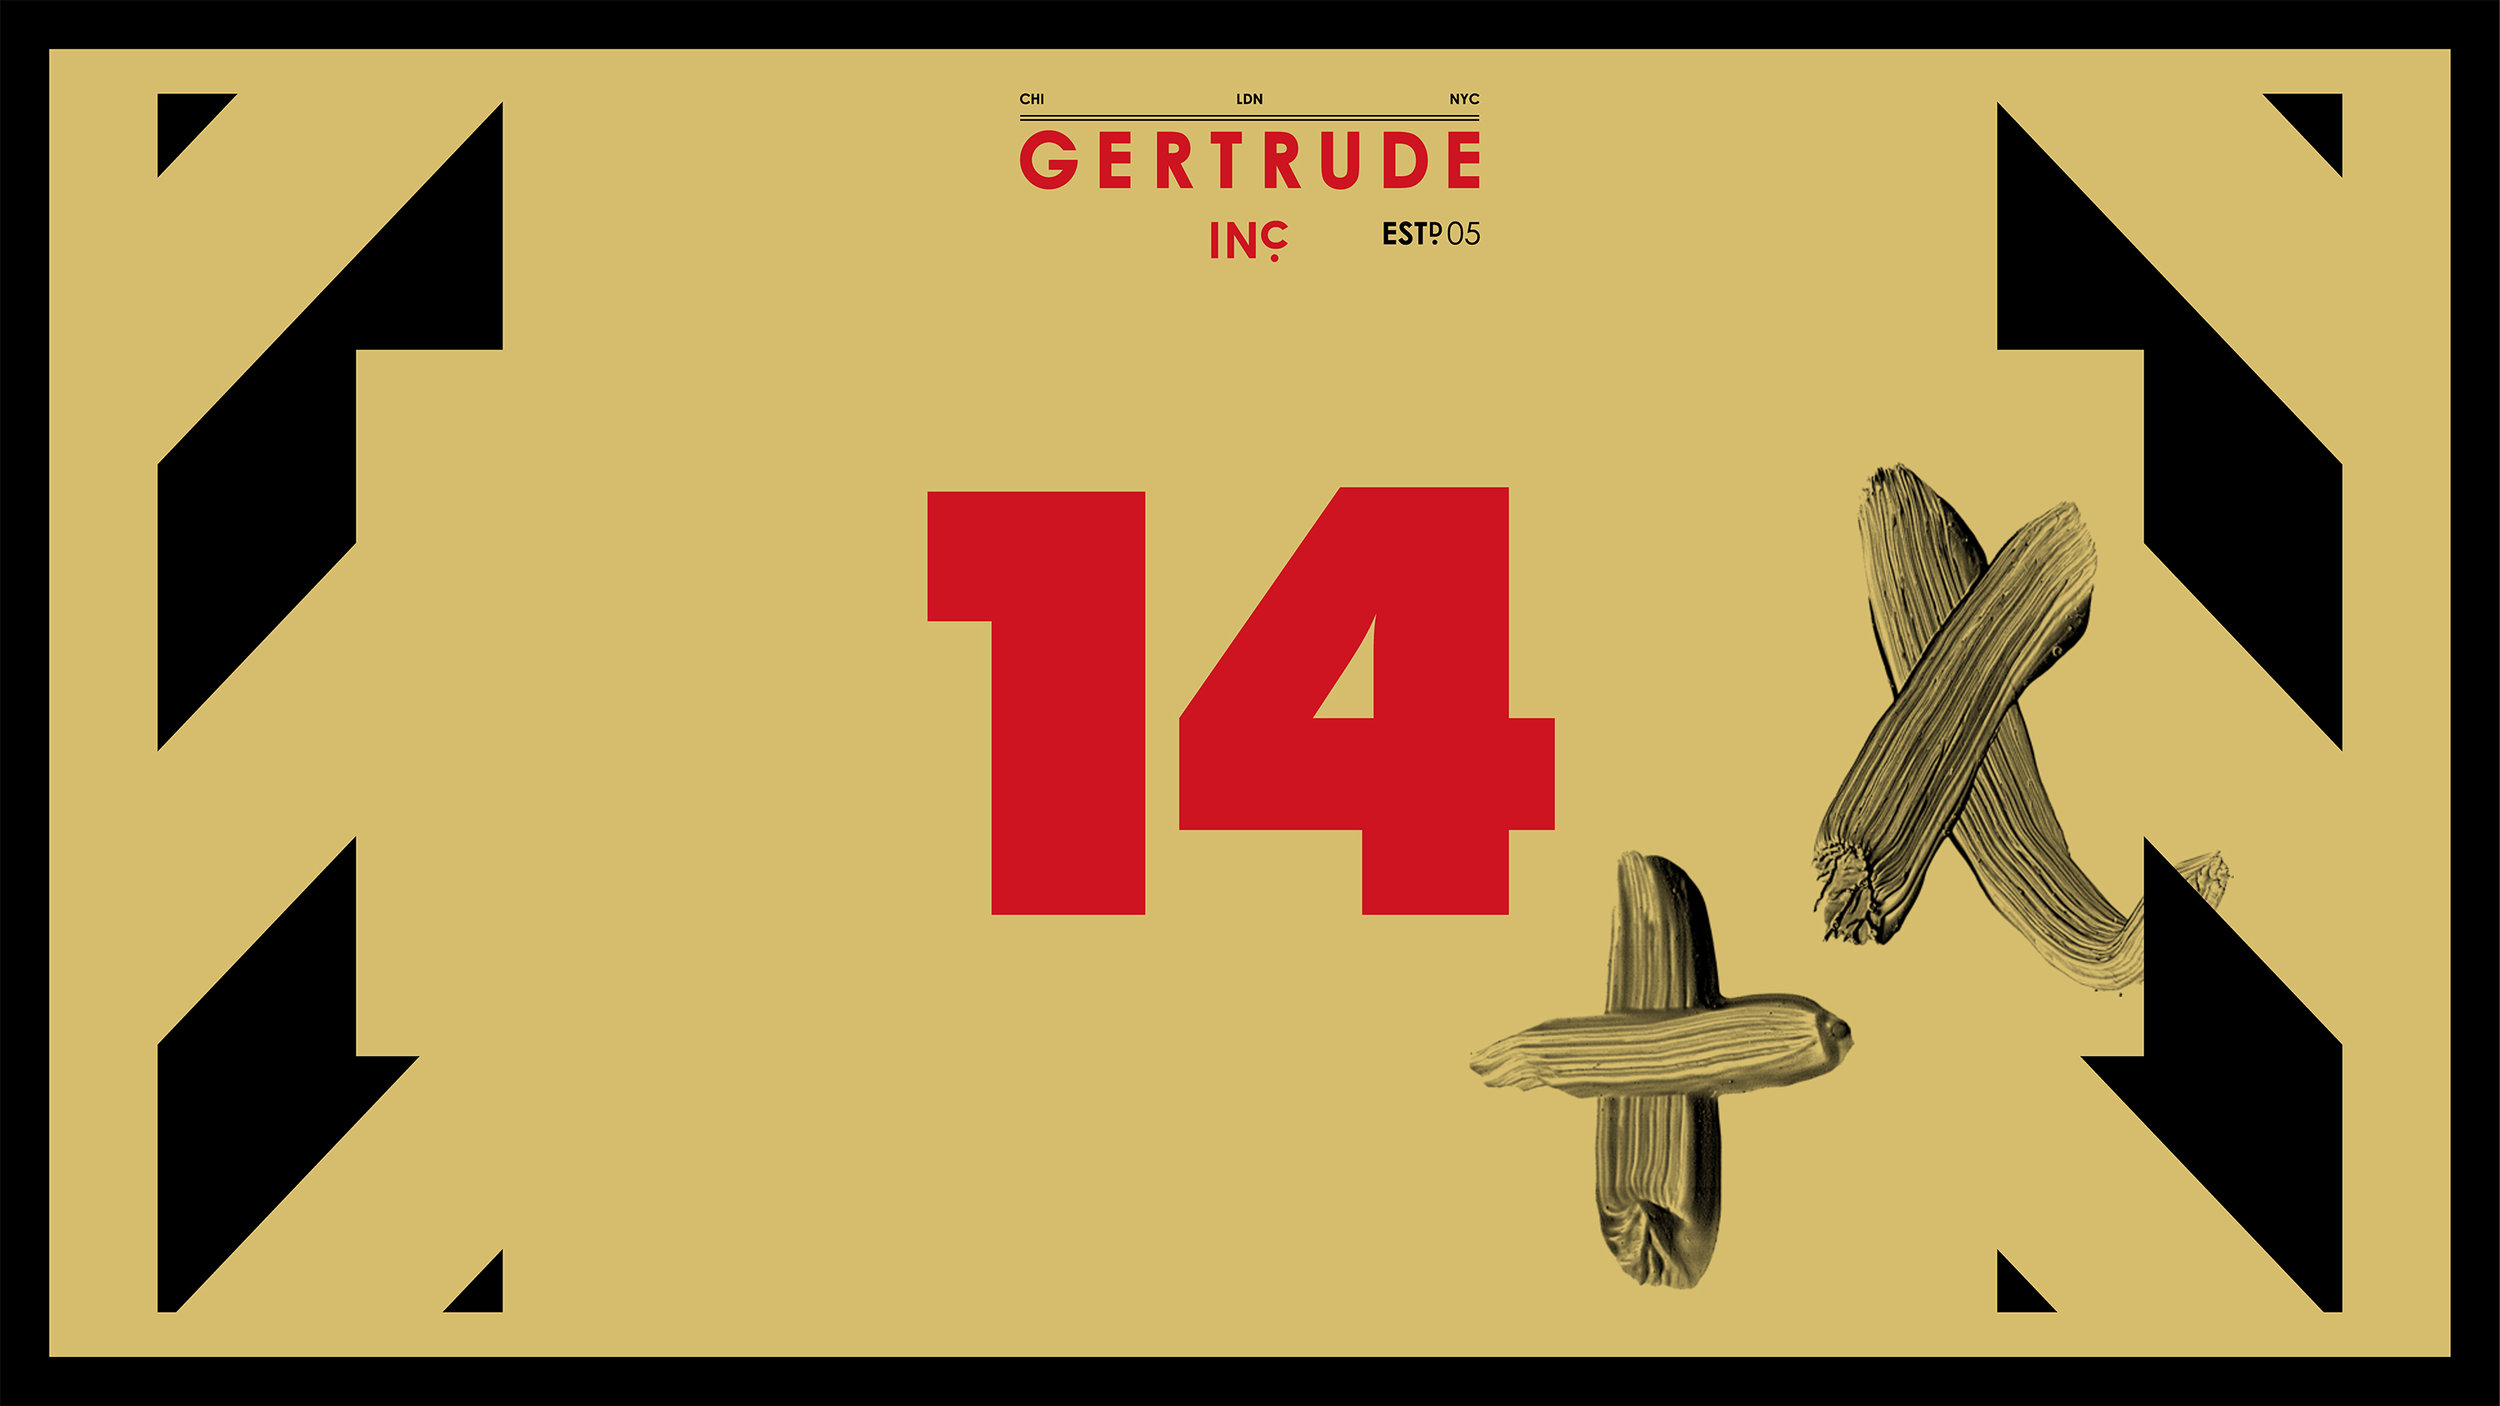 GERTRUDE-INC-Celebrates-14-Years-of-Innovation-01.jpg